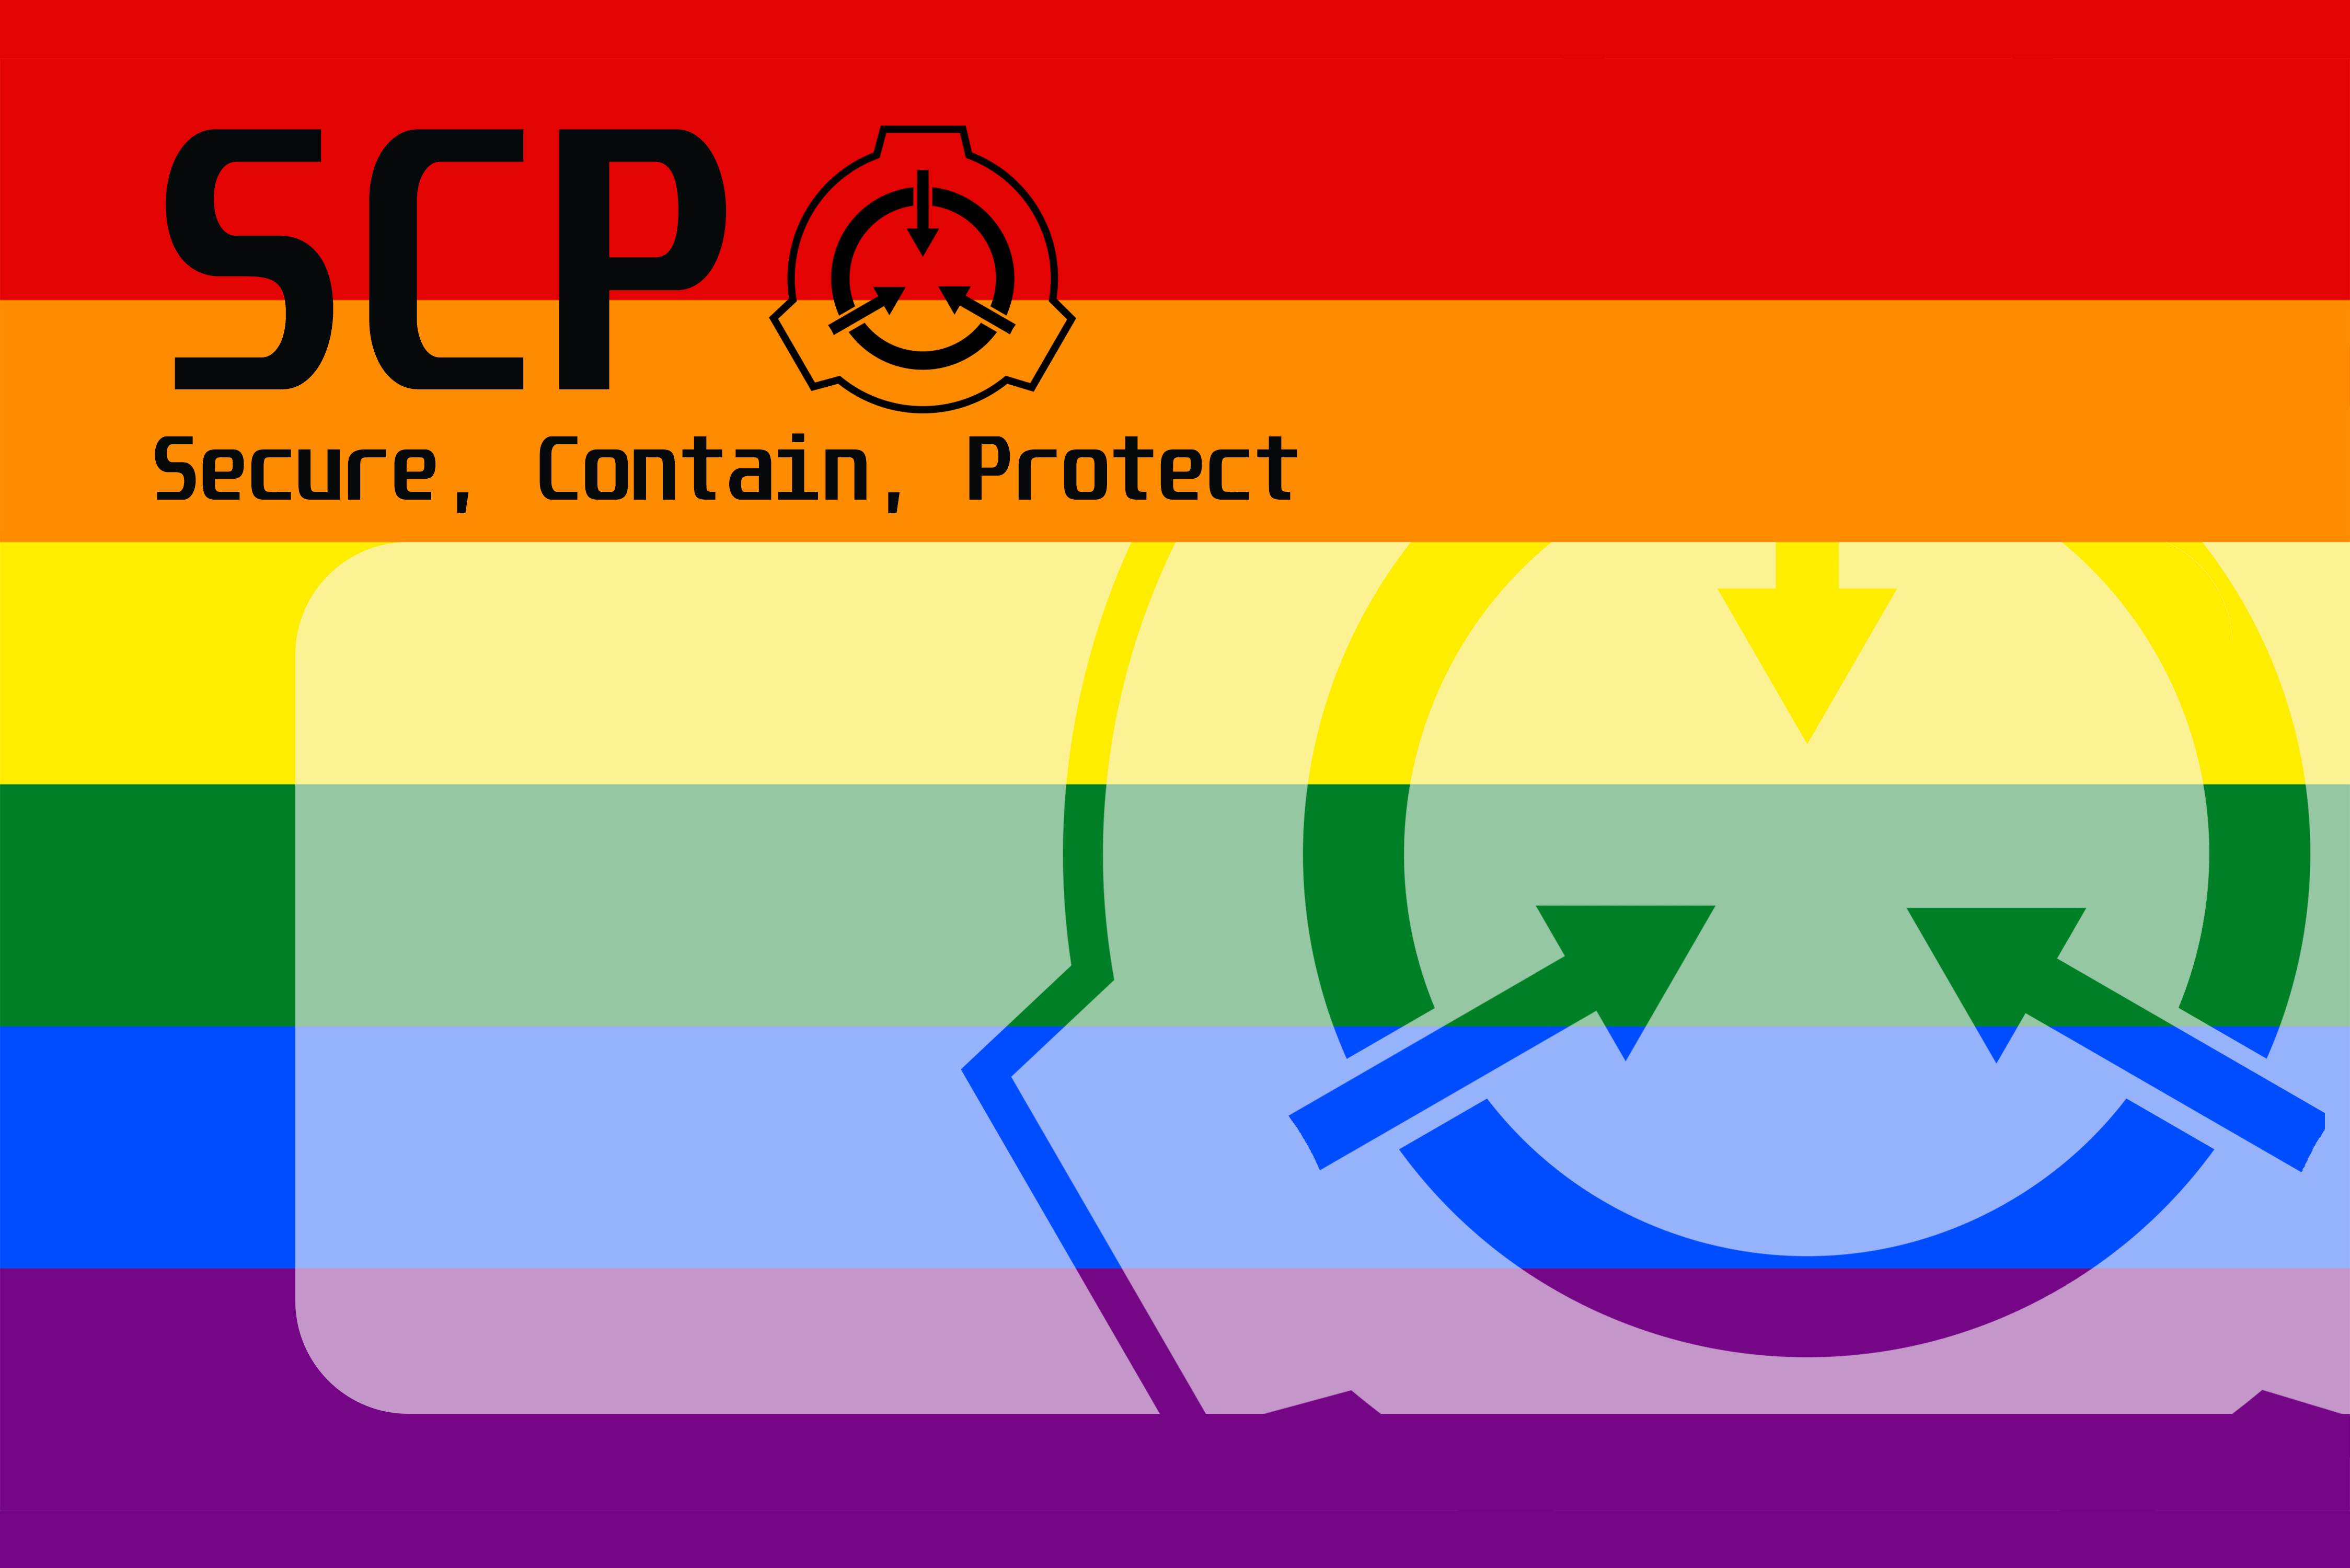 SCP-Ccard-Rainbow-03.png